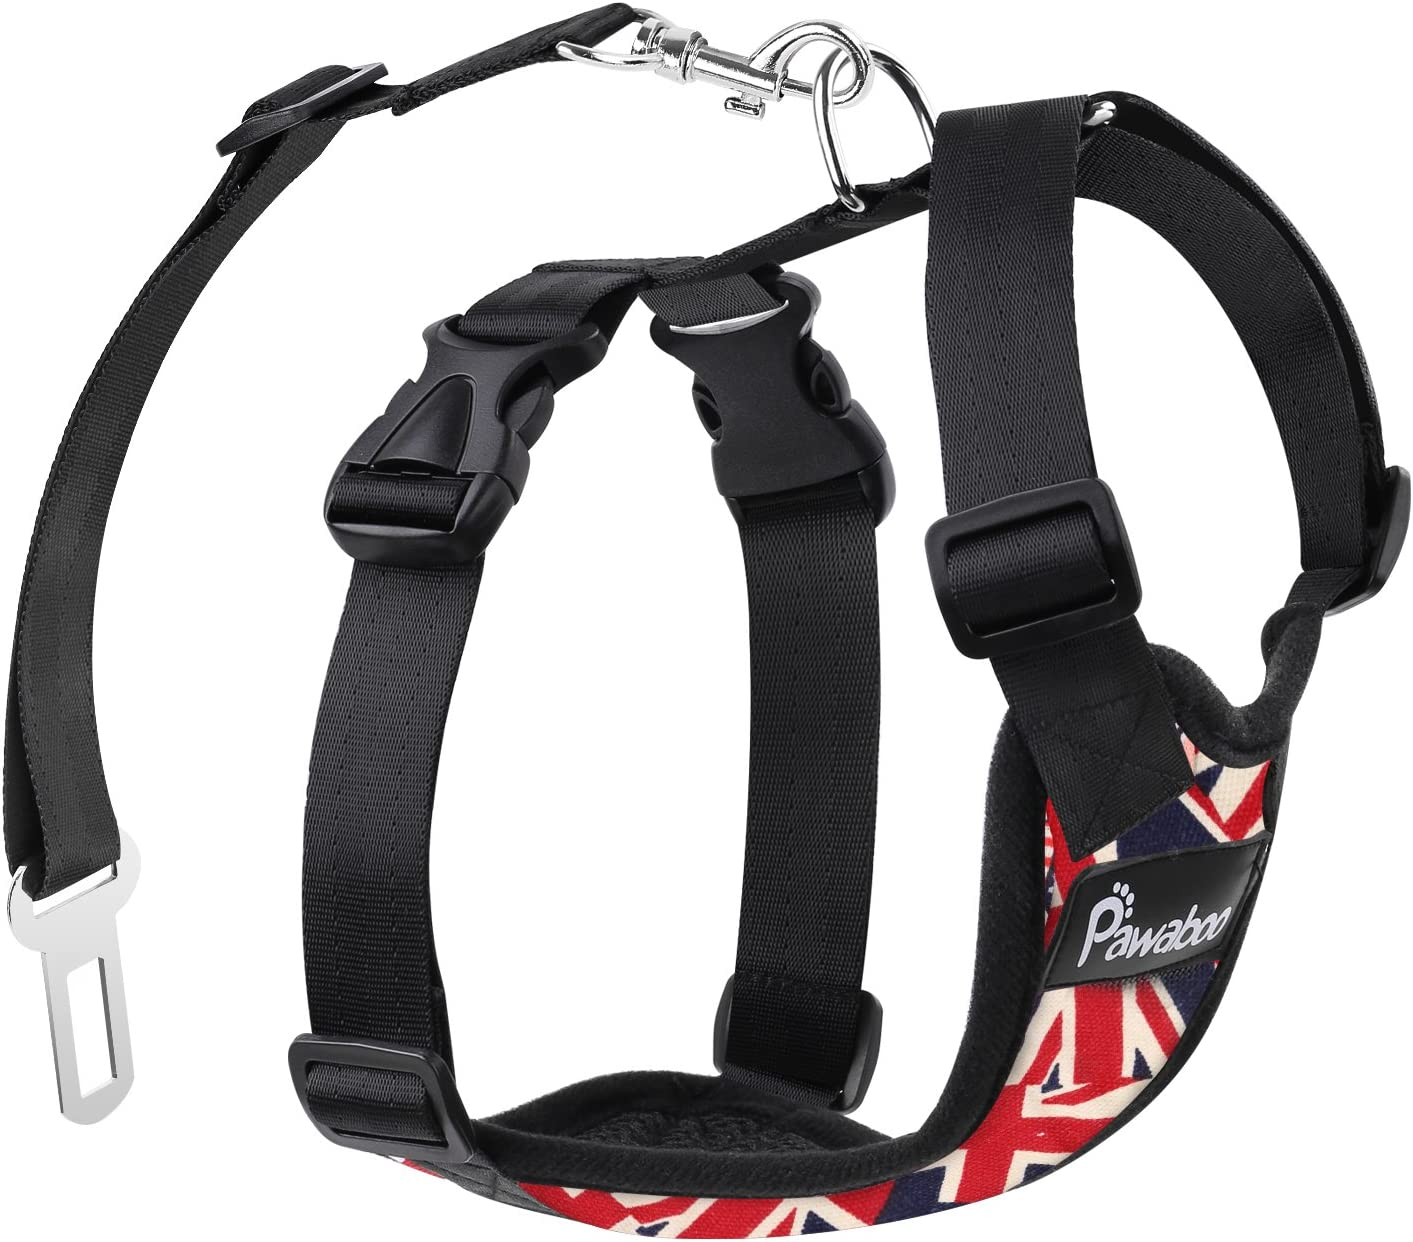 XL Blue//White Stripes Pawaboo Dog Safety Vest Harness Easy Control for Driving Traveling Safety for Small Medium Dogs Cats Pet Car Harness Vehicle Seat Belt with Adjustable Strap and Buckle Clip